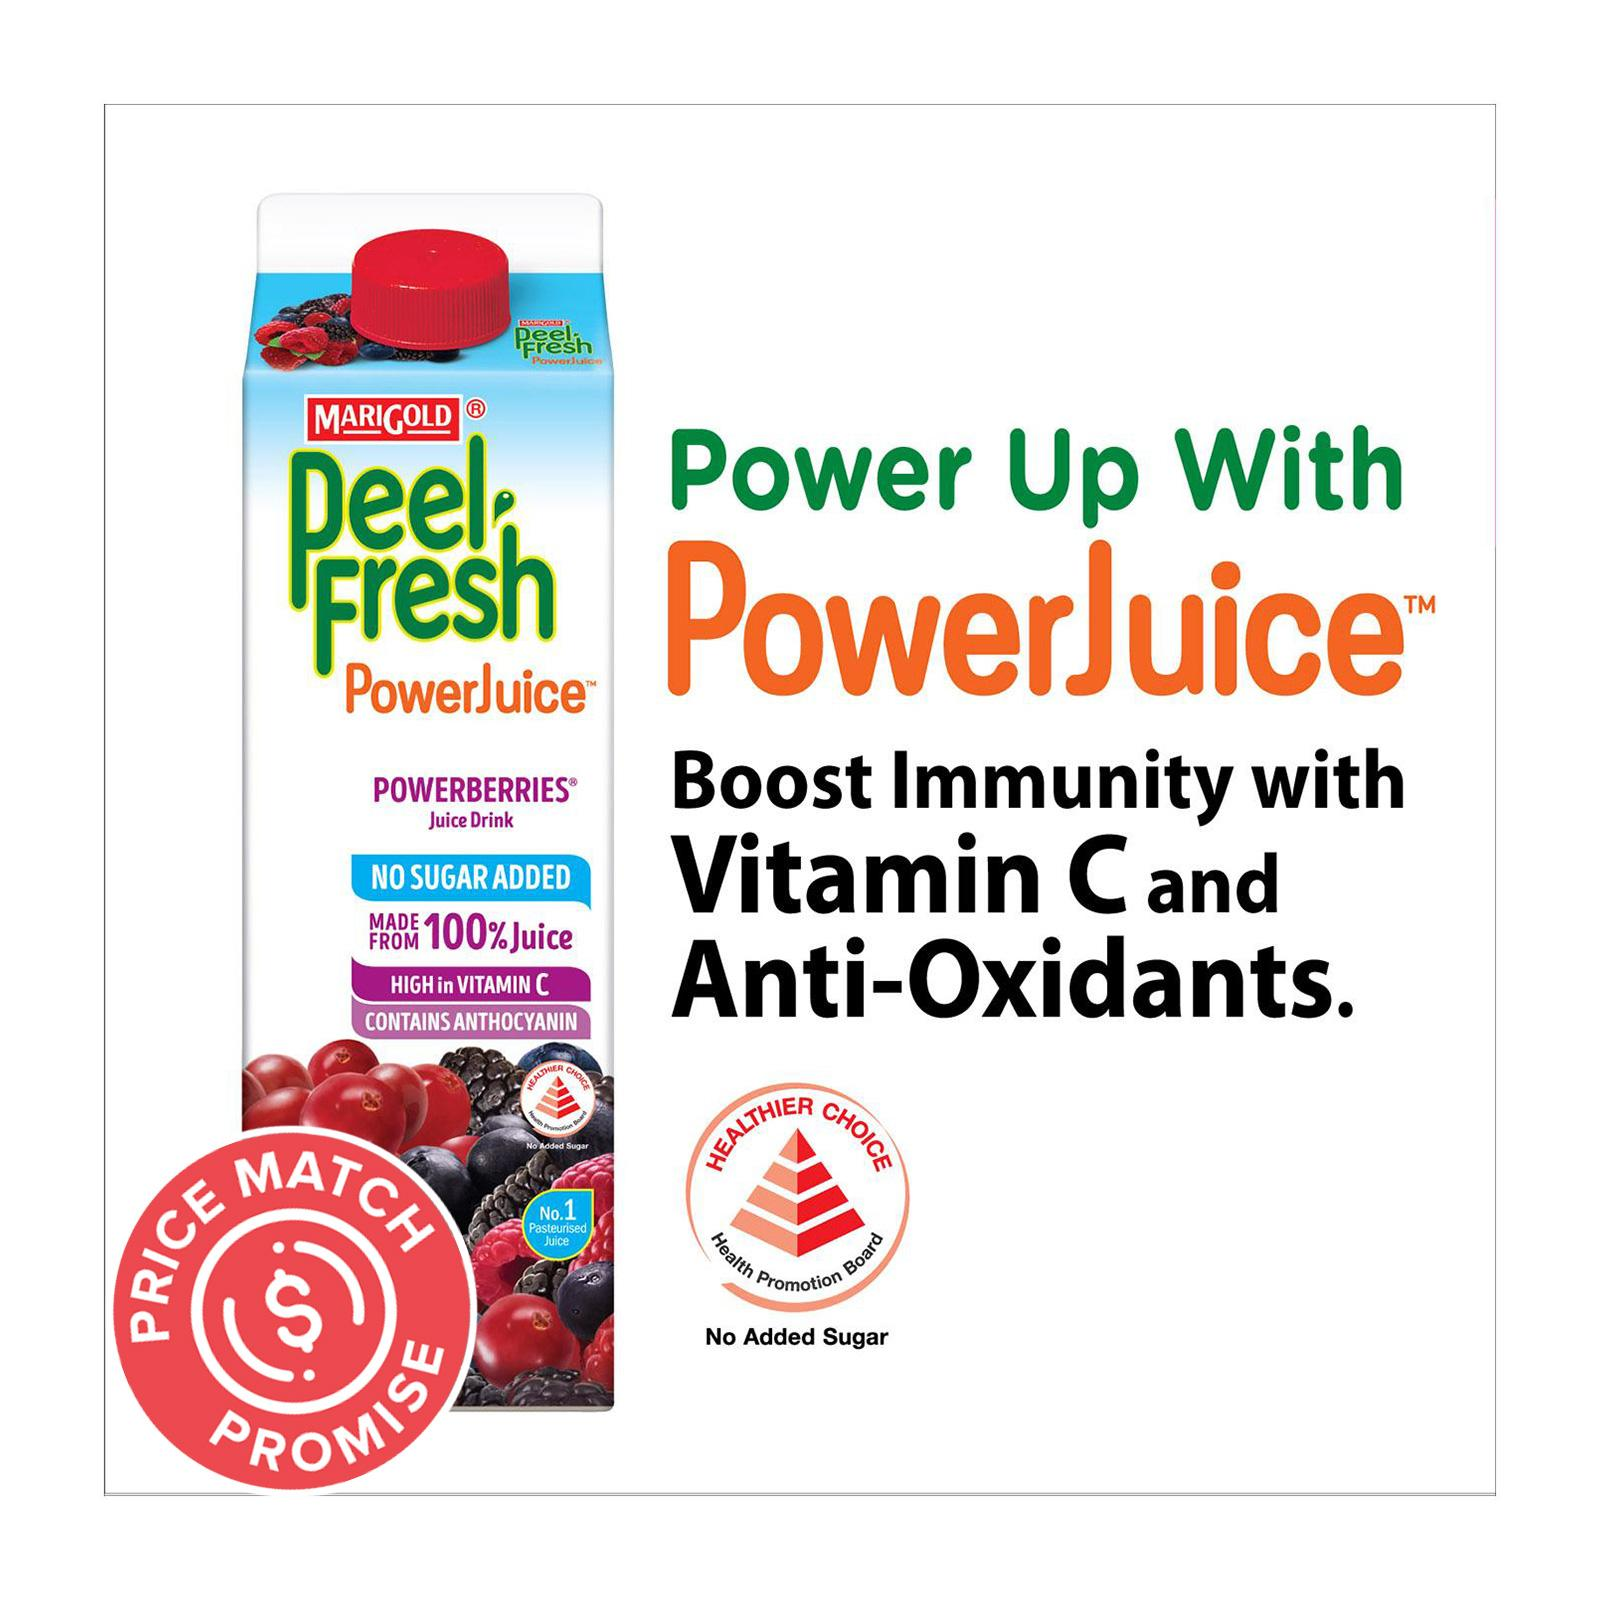 MARIGOLD Peel Fresh No Sugar Added Juice Drink - Powerberries 1L